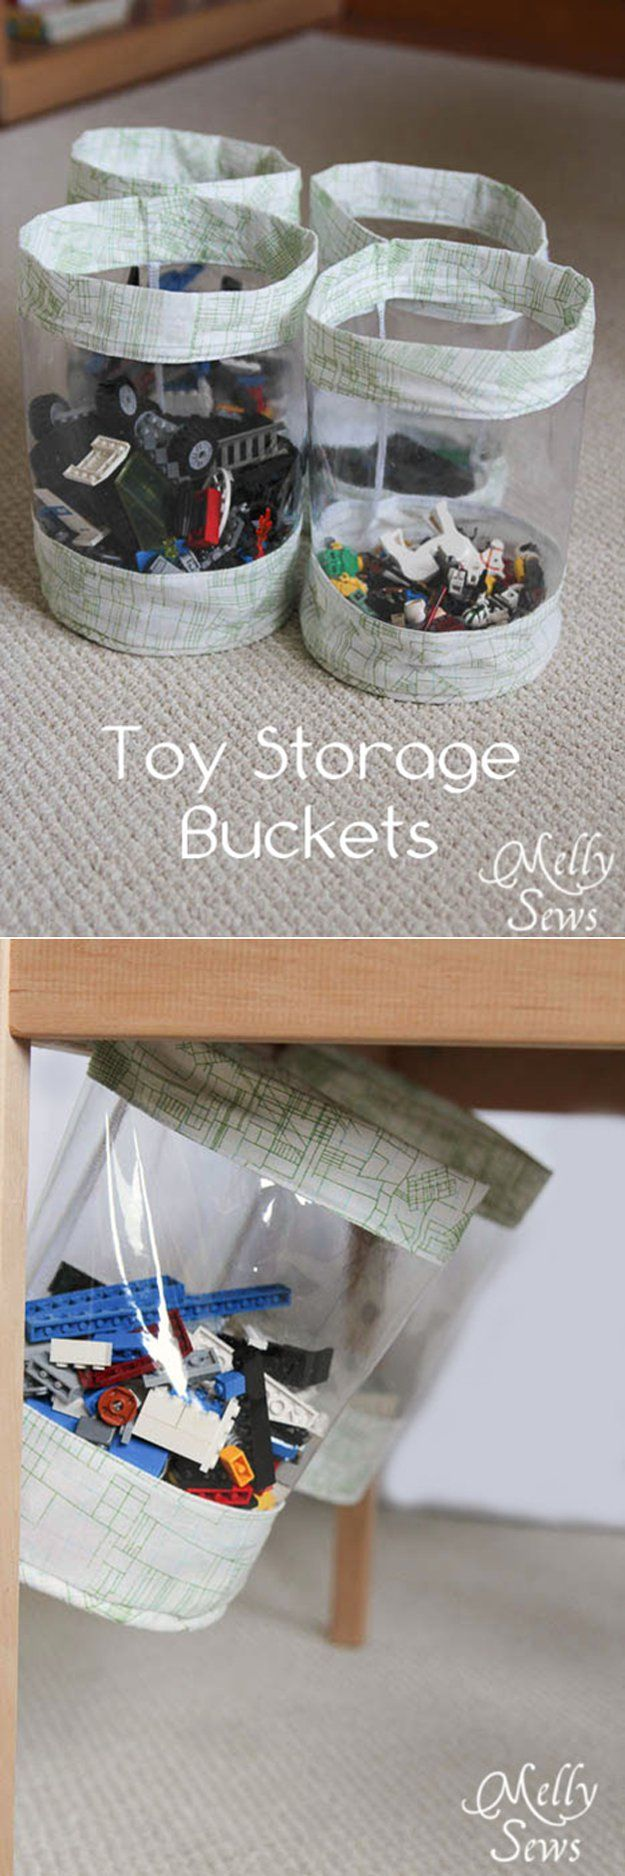 DIY ocultos Toy Storage Ideas | artesaniasdebricolaje.ru/storage-solutions-life-hack/